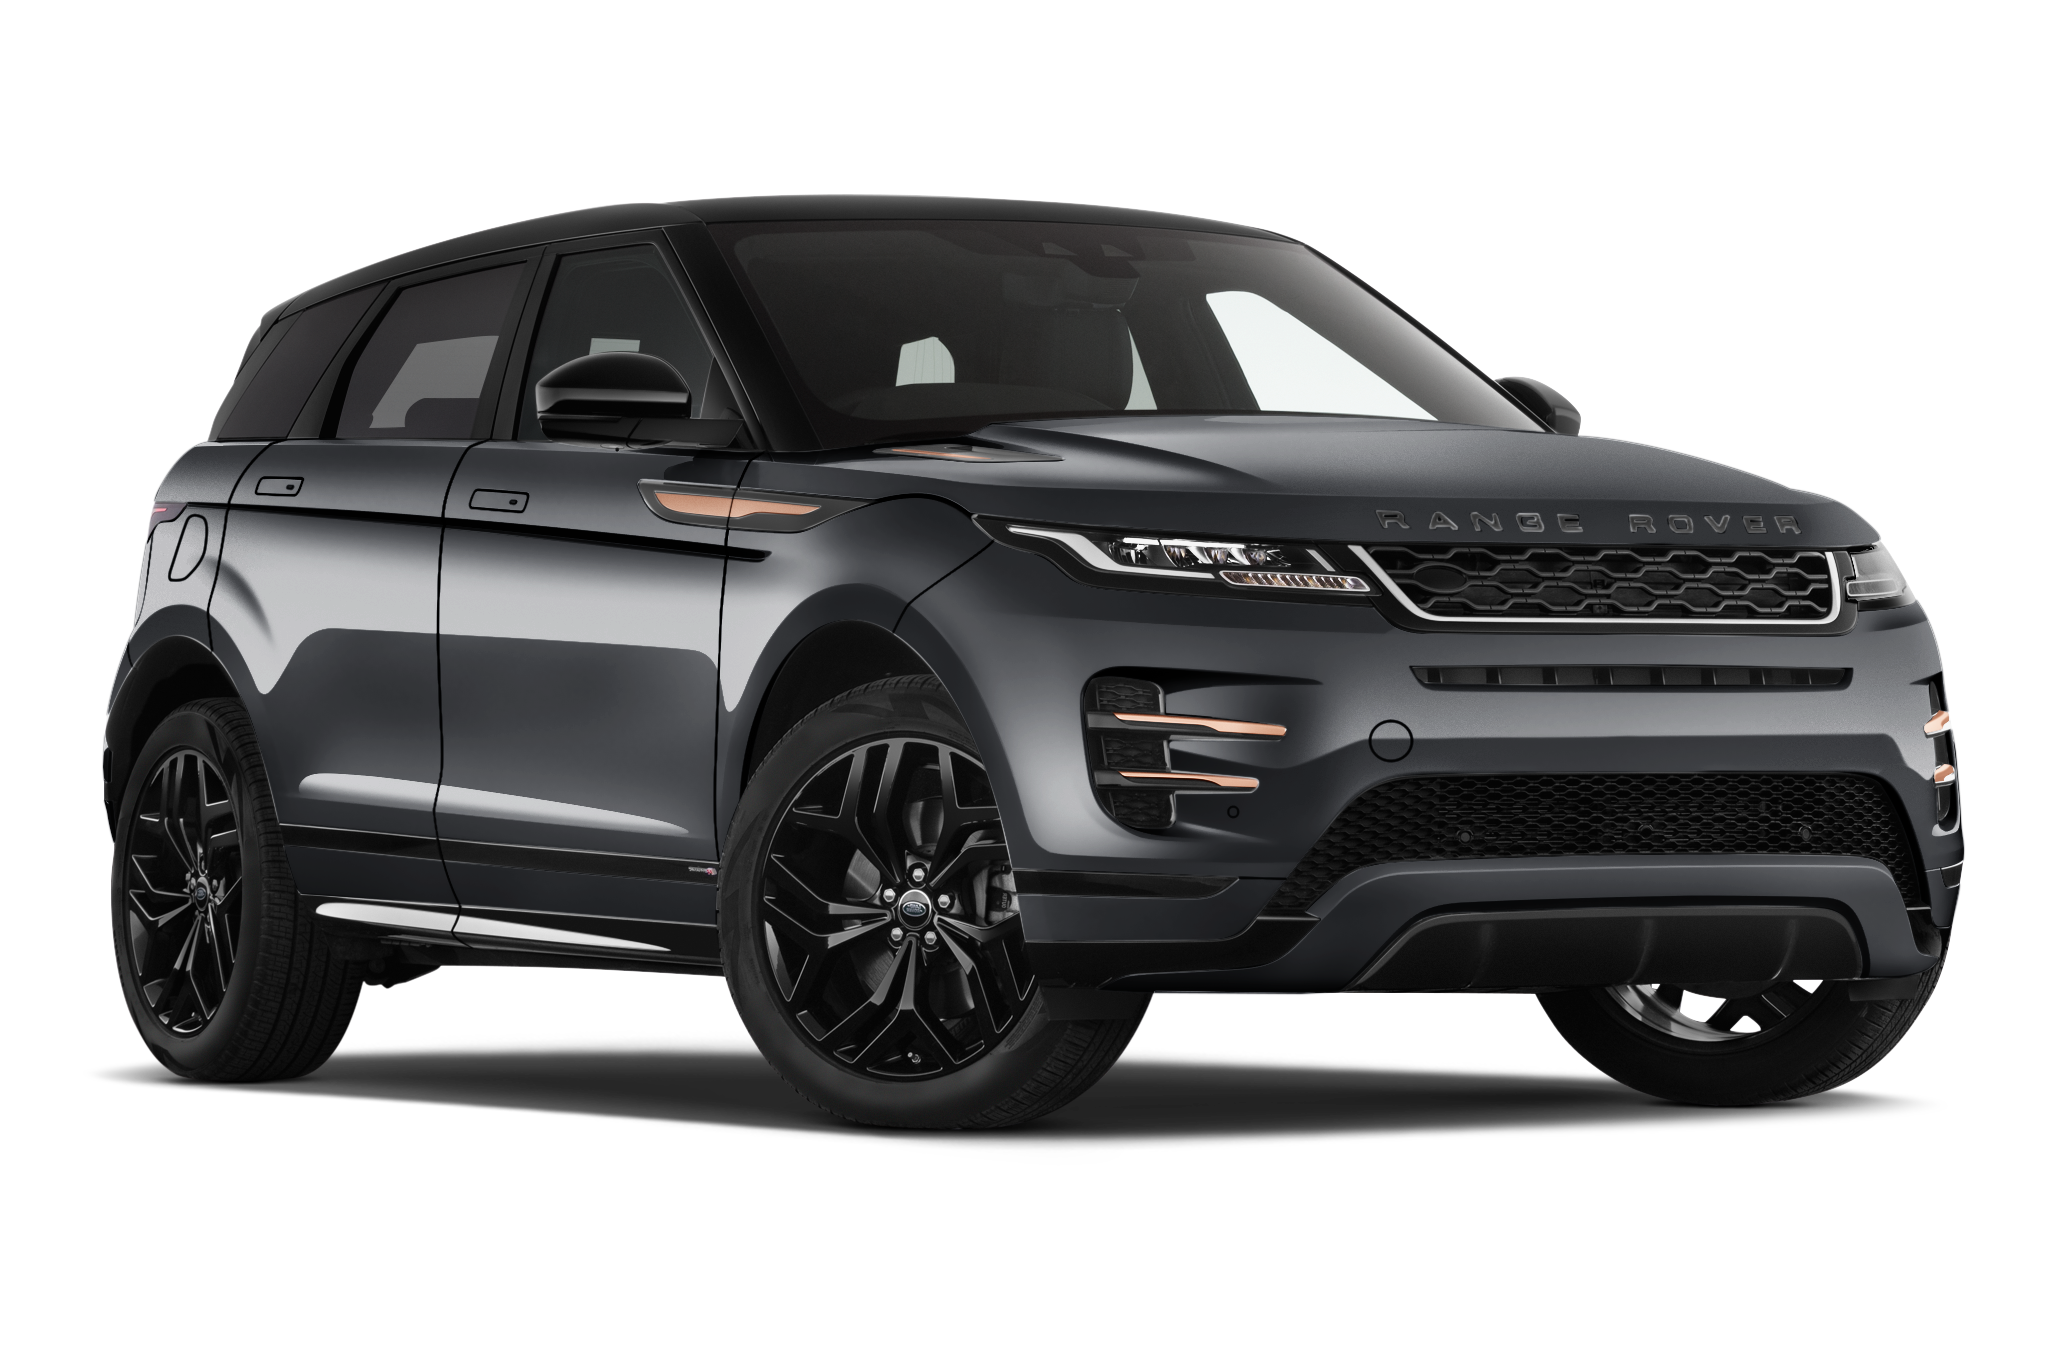 Related Land Rover Range Rover Evoque Lease Deals